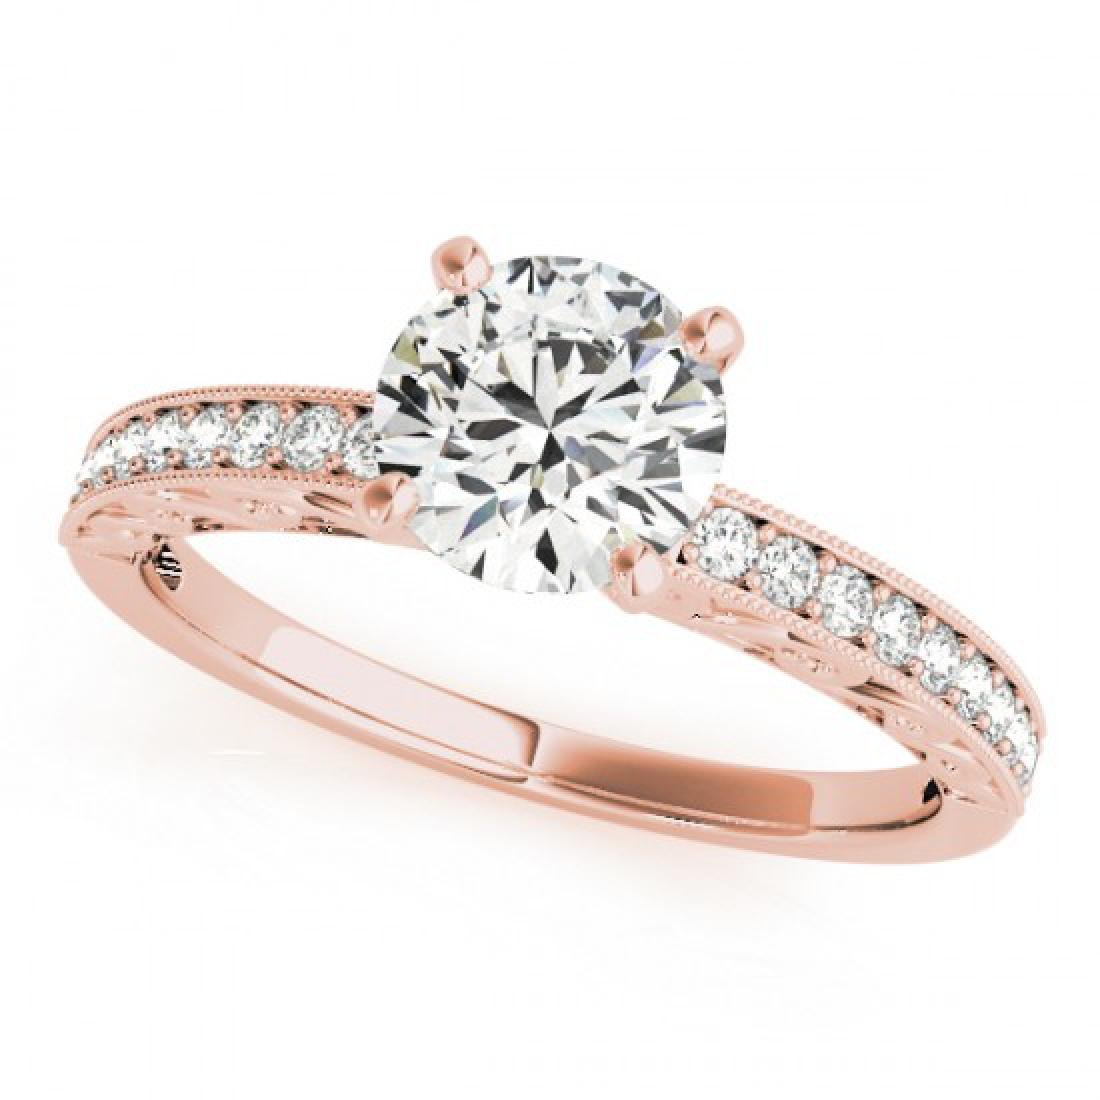 1.43 CTW Certified VS/SI Diamond Solitaire Antique Ring